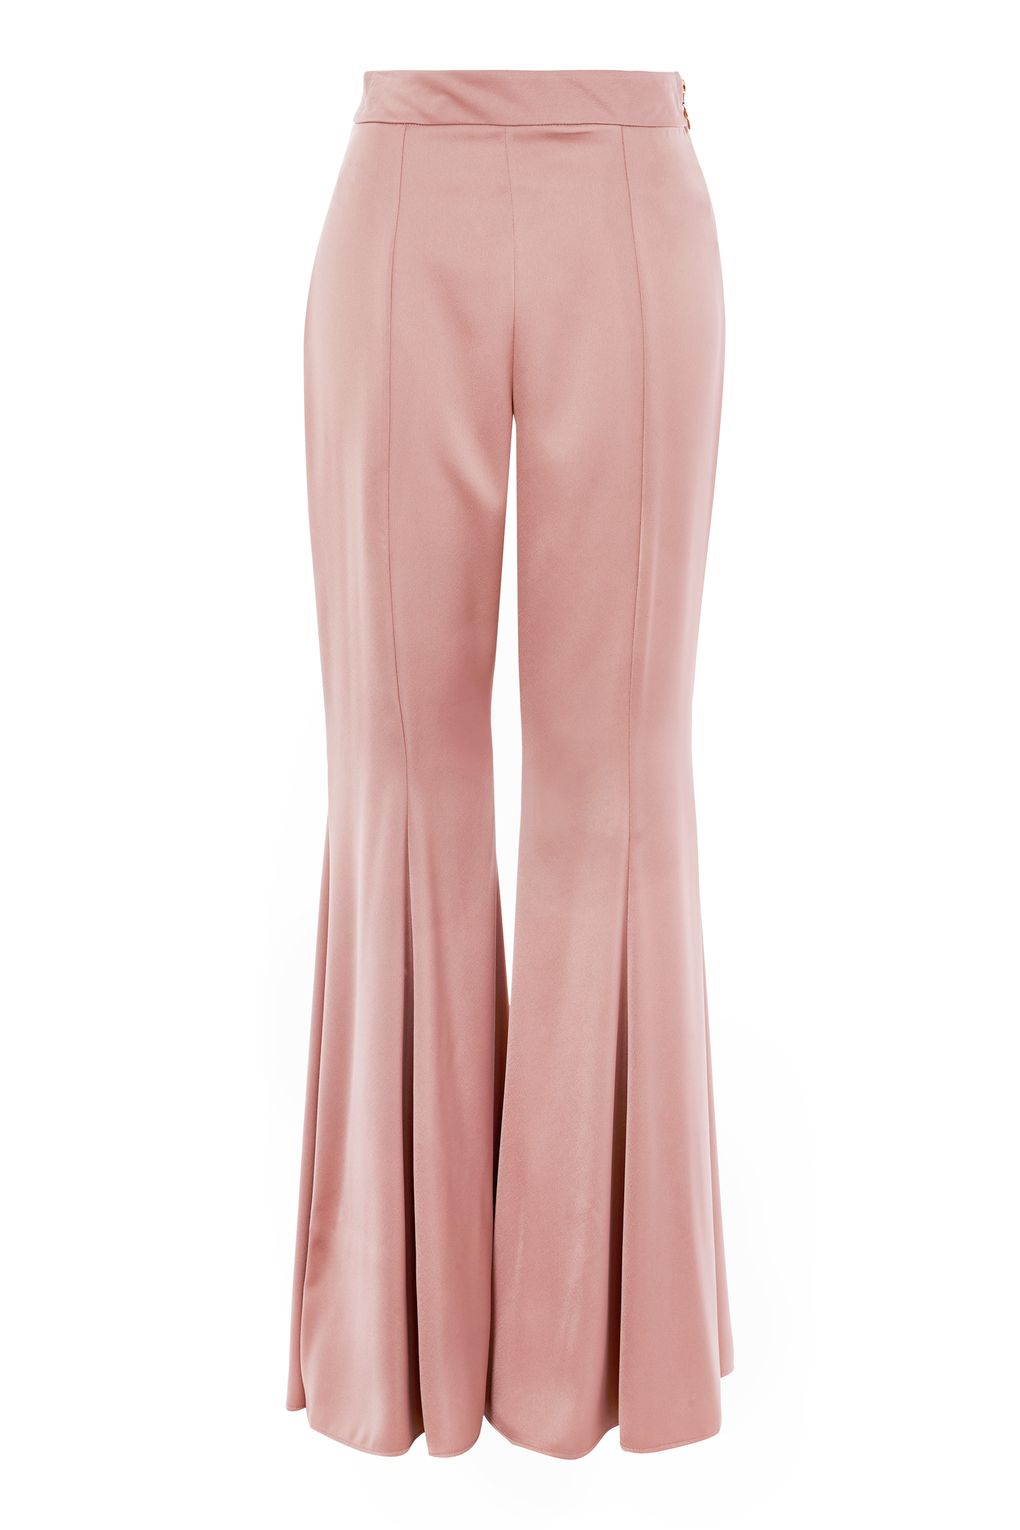 Satin Super Flare Trousers £49